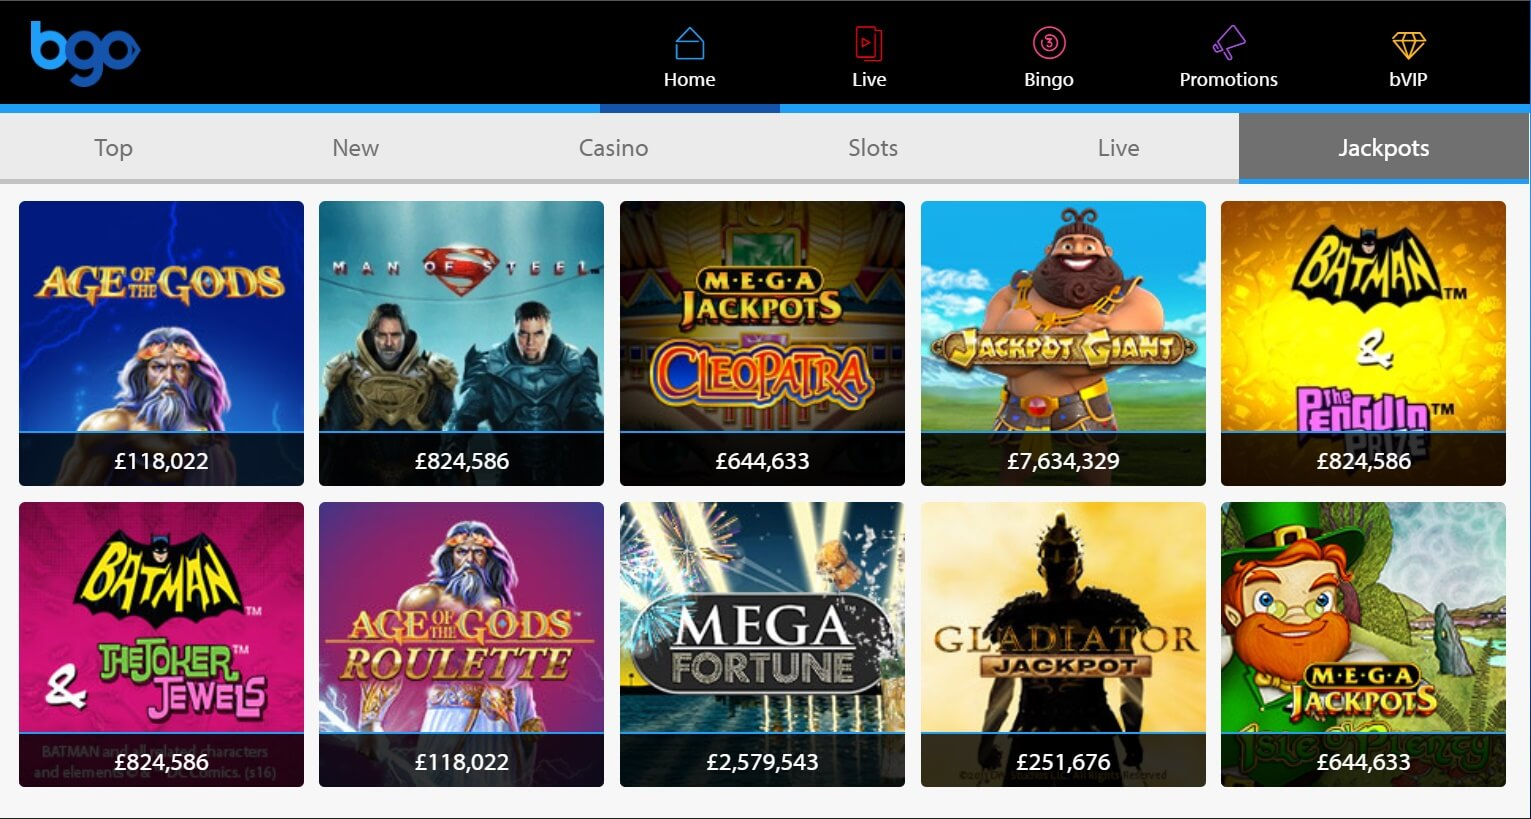 bgo casino games